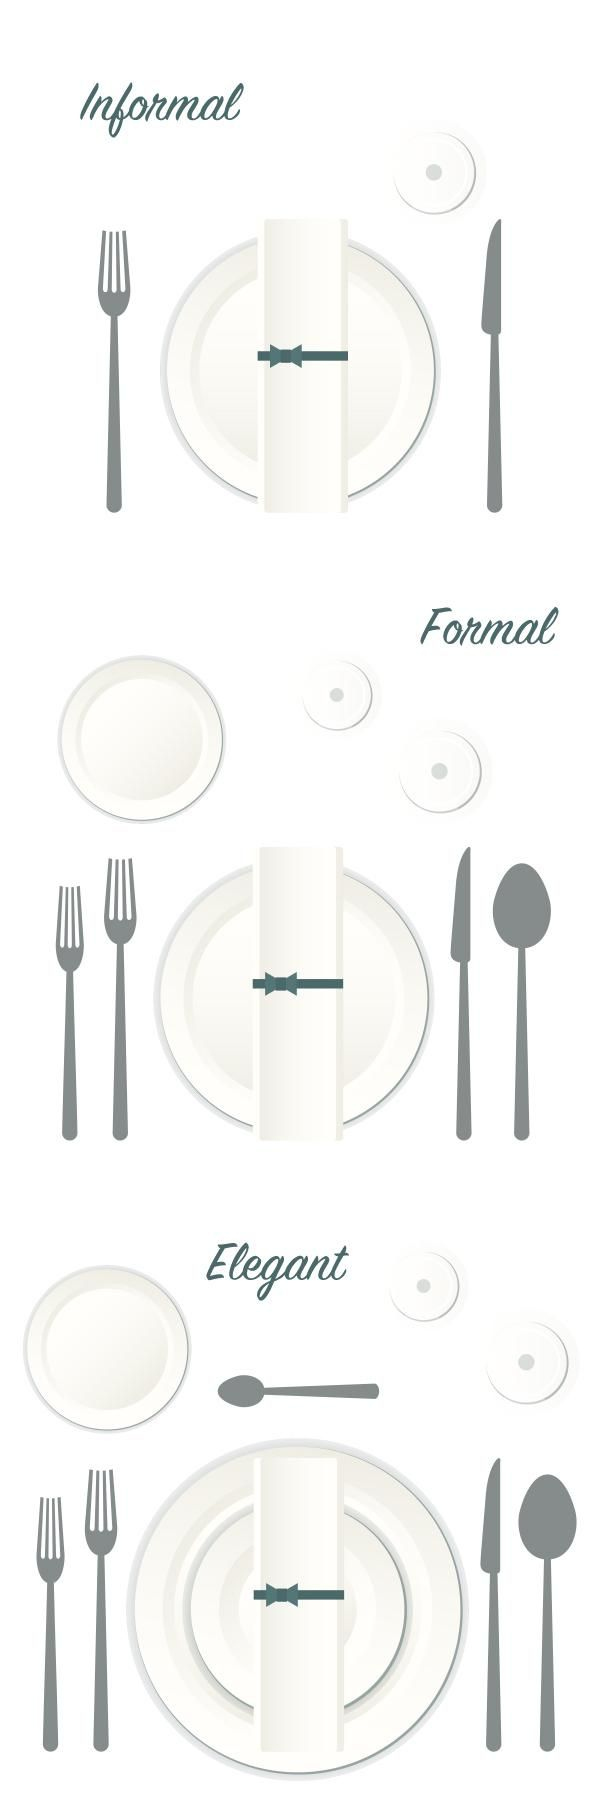 Learn how to set the dinner table for every occasion! Kirkland\u0027s shows you table settings for informal formal and elegant events.  sc 1 st  Pinterest & Table Place Settings for Every Occasion | Dinner table Table ...